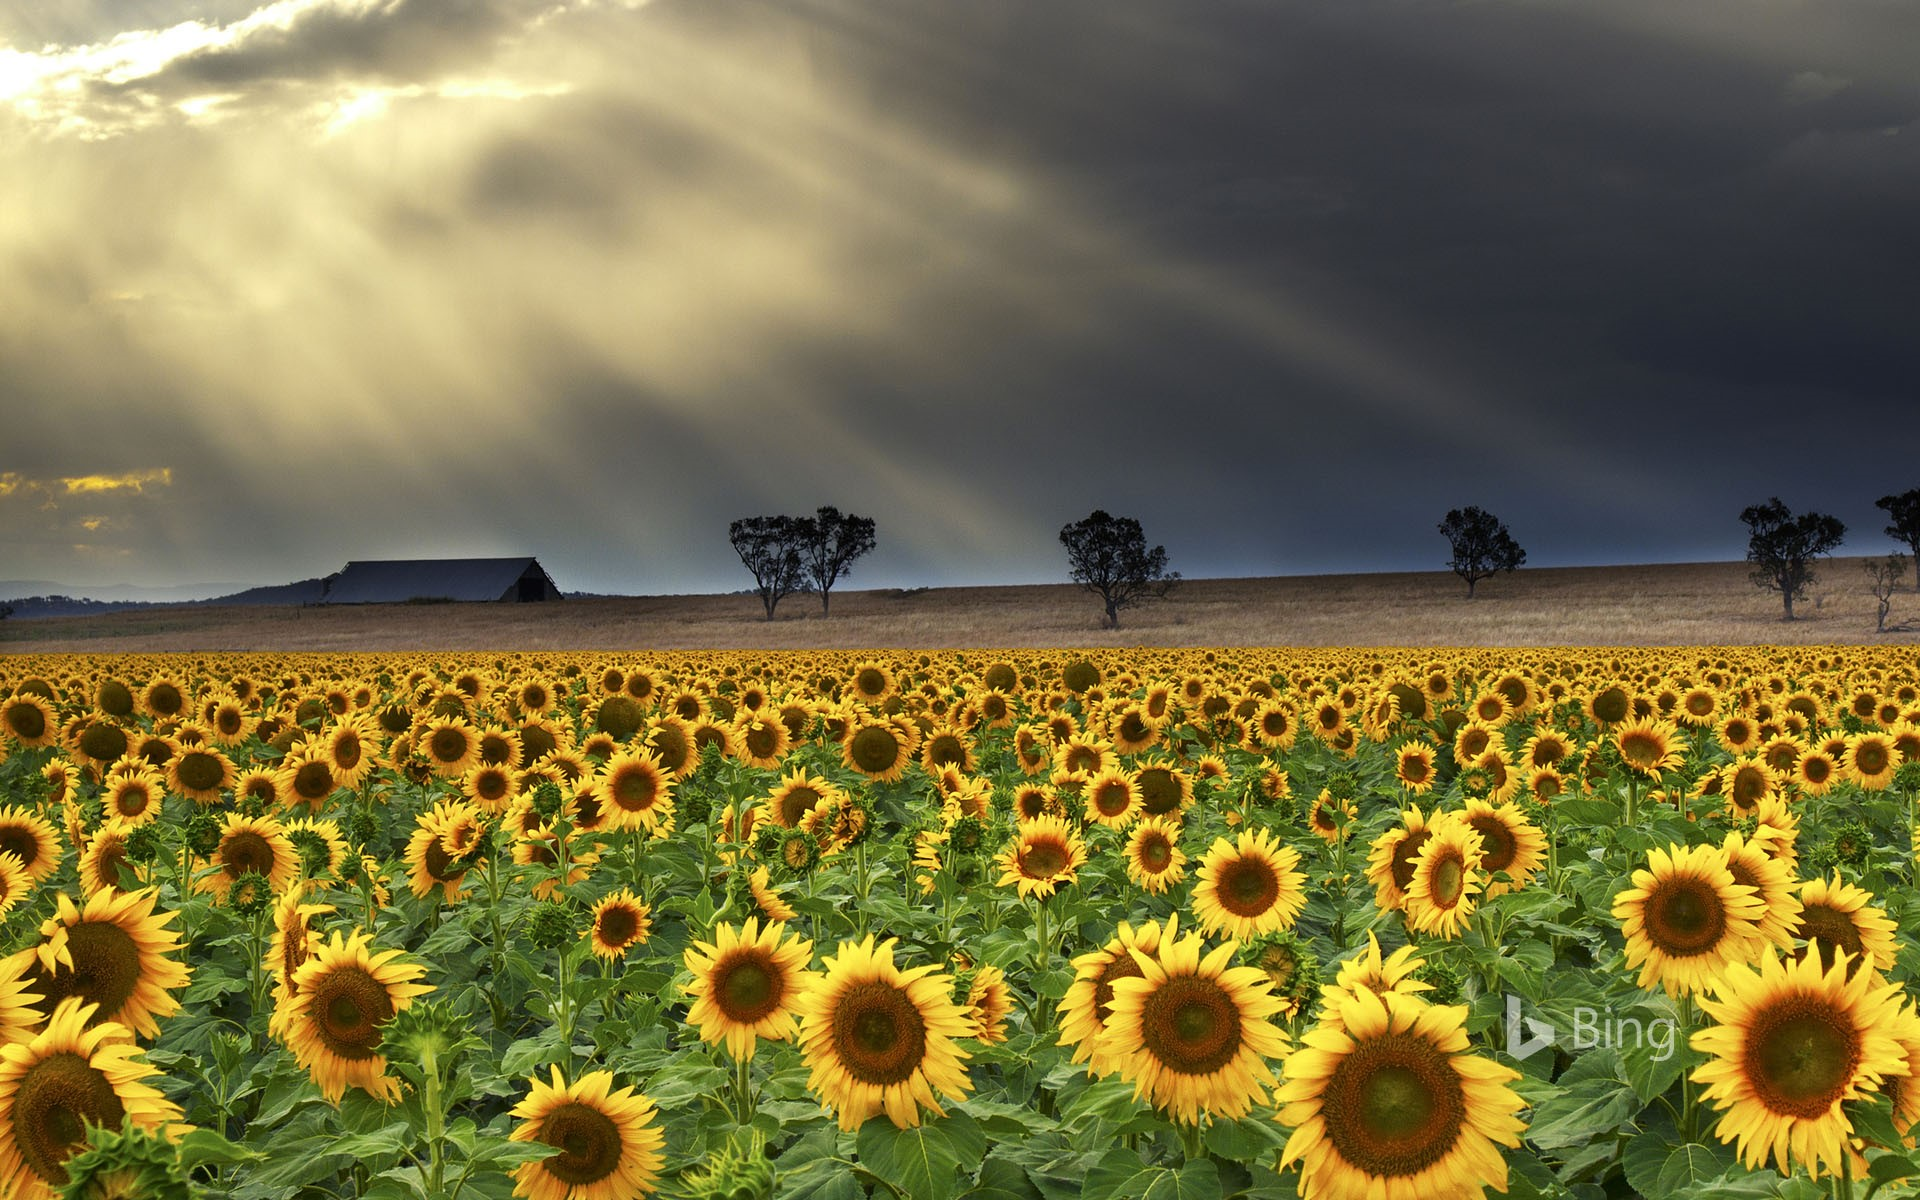 Sunflowers at Windy Station farm in Quirindi, New South Wales, Australia